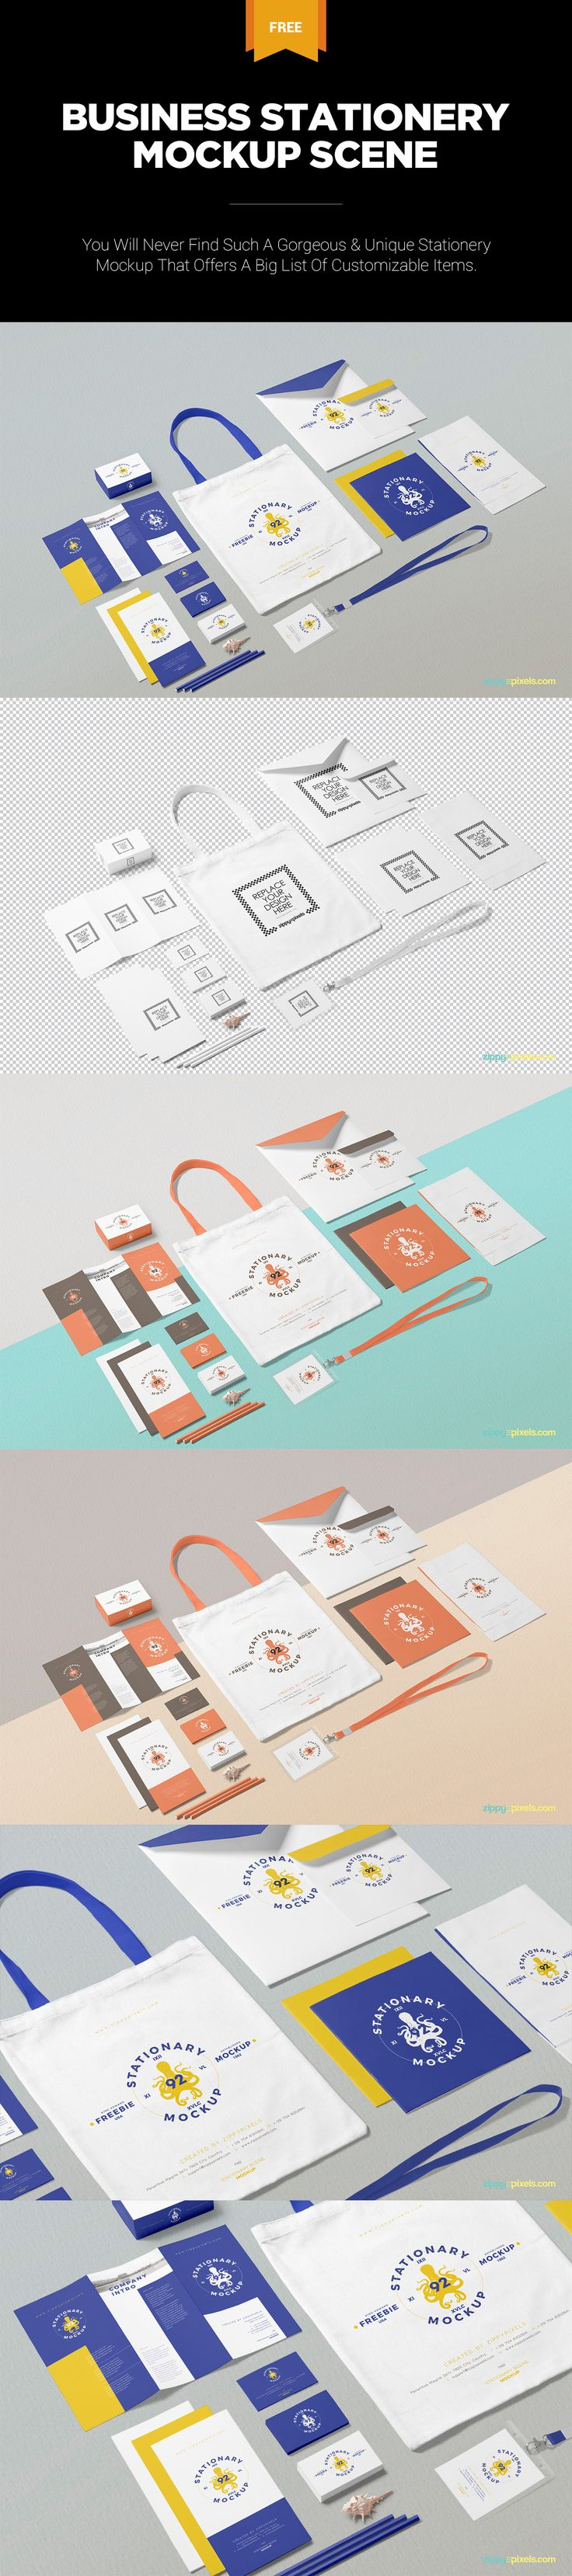 473 best Mockups images on Pinterest | Awesome designs, Business ...